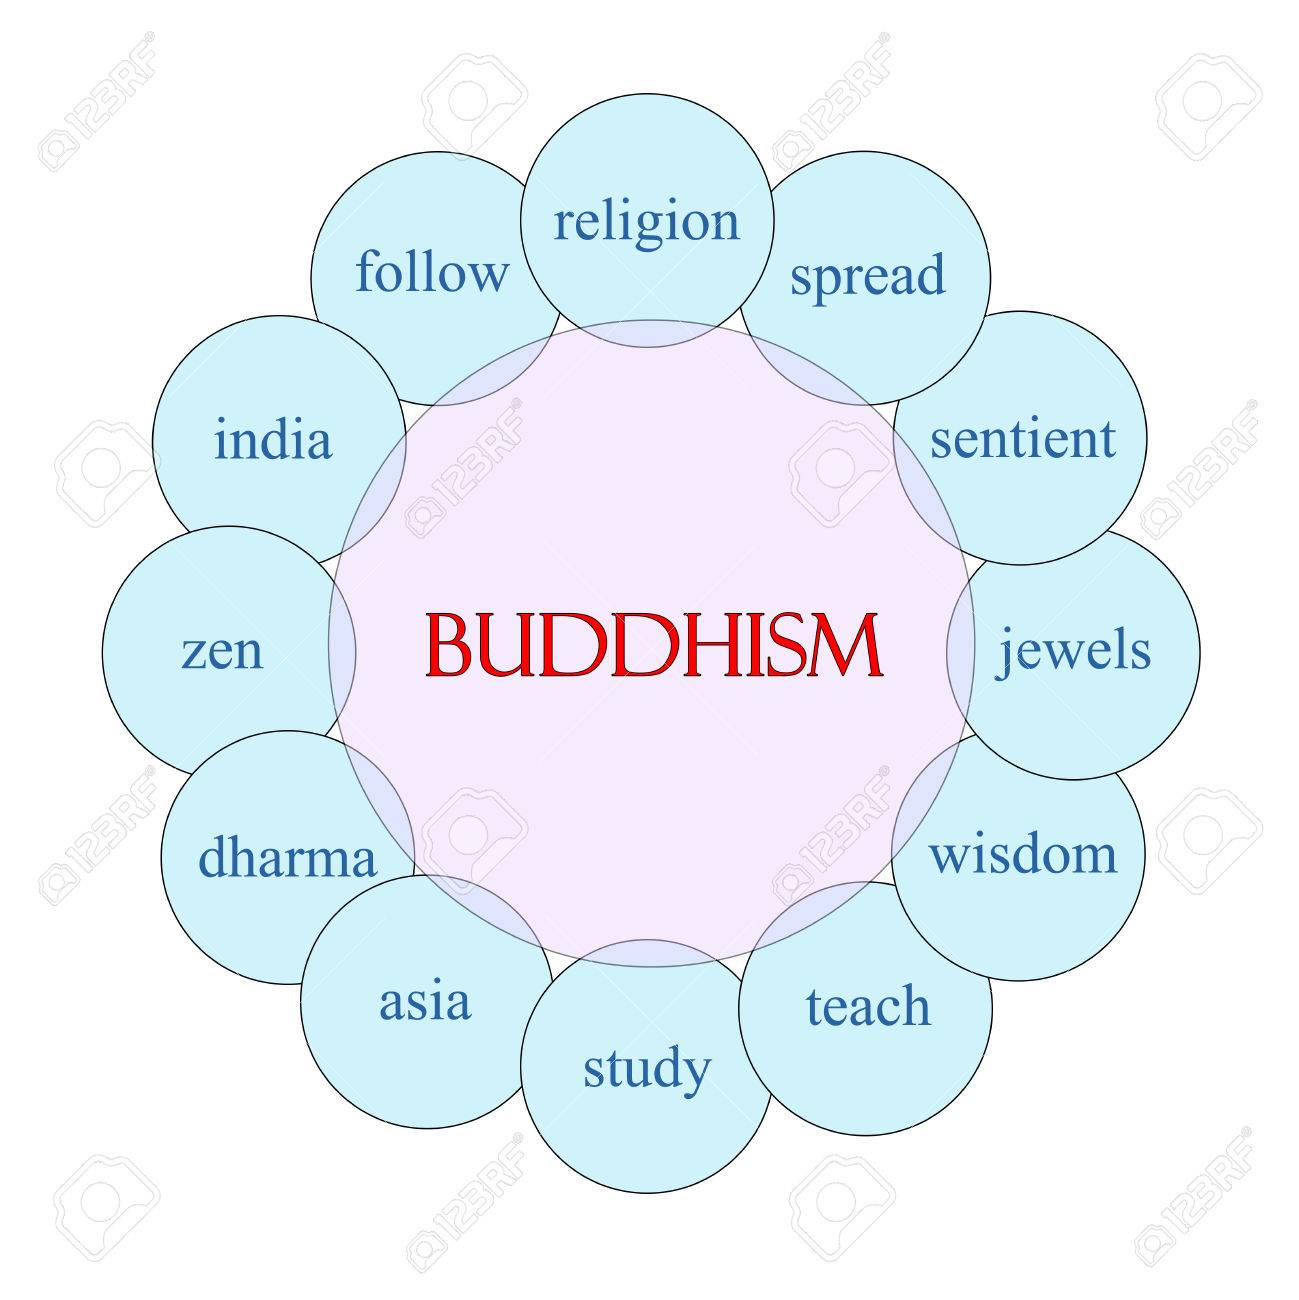 Buddhism Concept Circular Diagram In Pink And Blue With Great ...